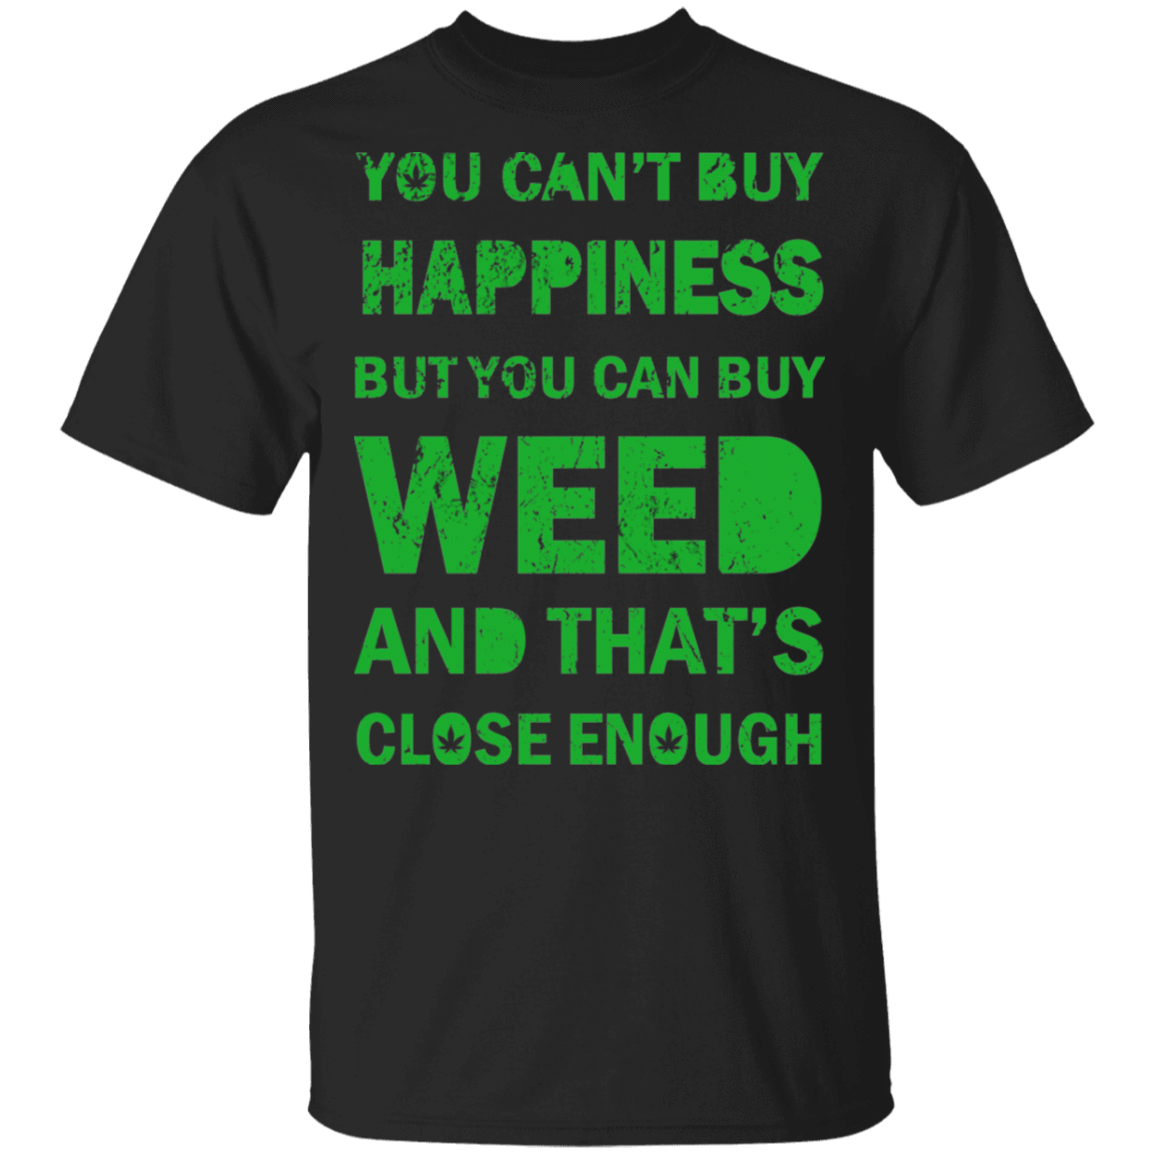 You Can't Buy Happiness But You Can Buy Weed And That's Close Enough T-Shirts, Hoodies, Tank 22-113-79335577-252 - Tee Ript